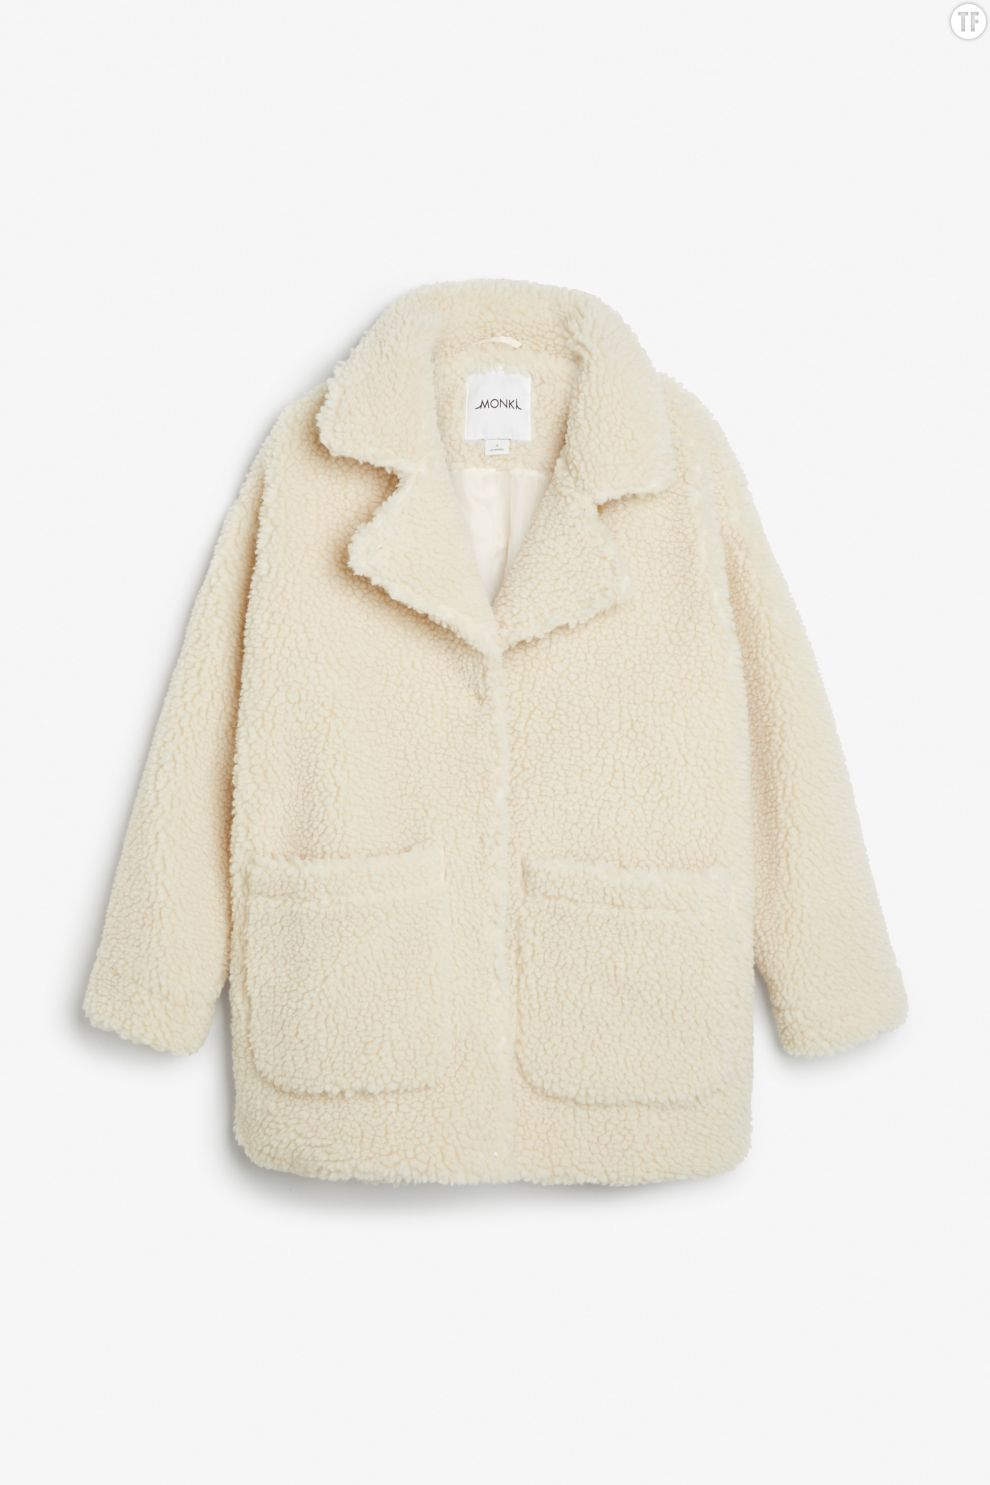 Manteau cocon en sherling Monki, 70€